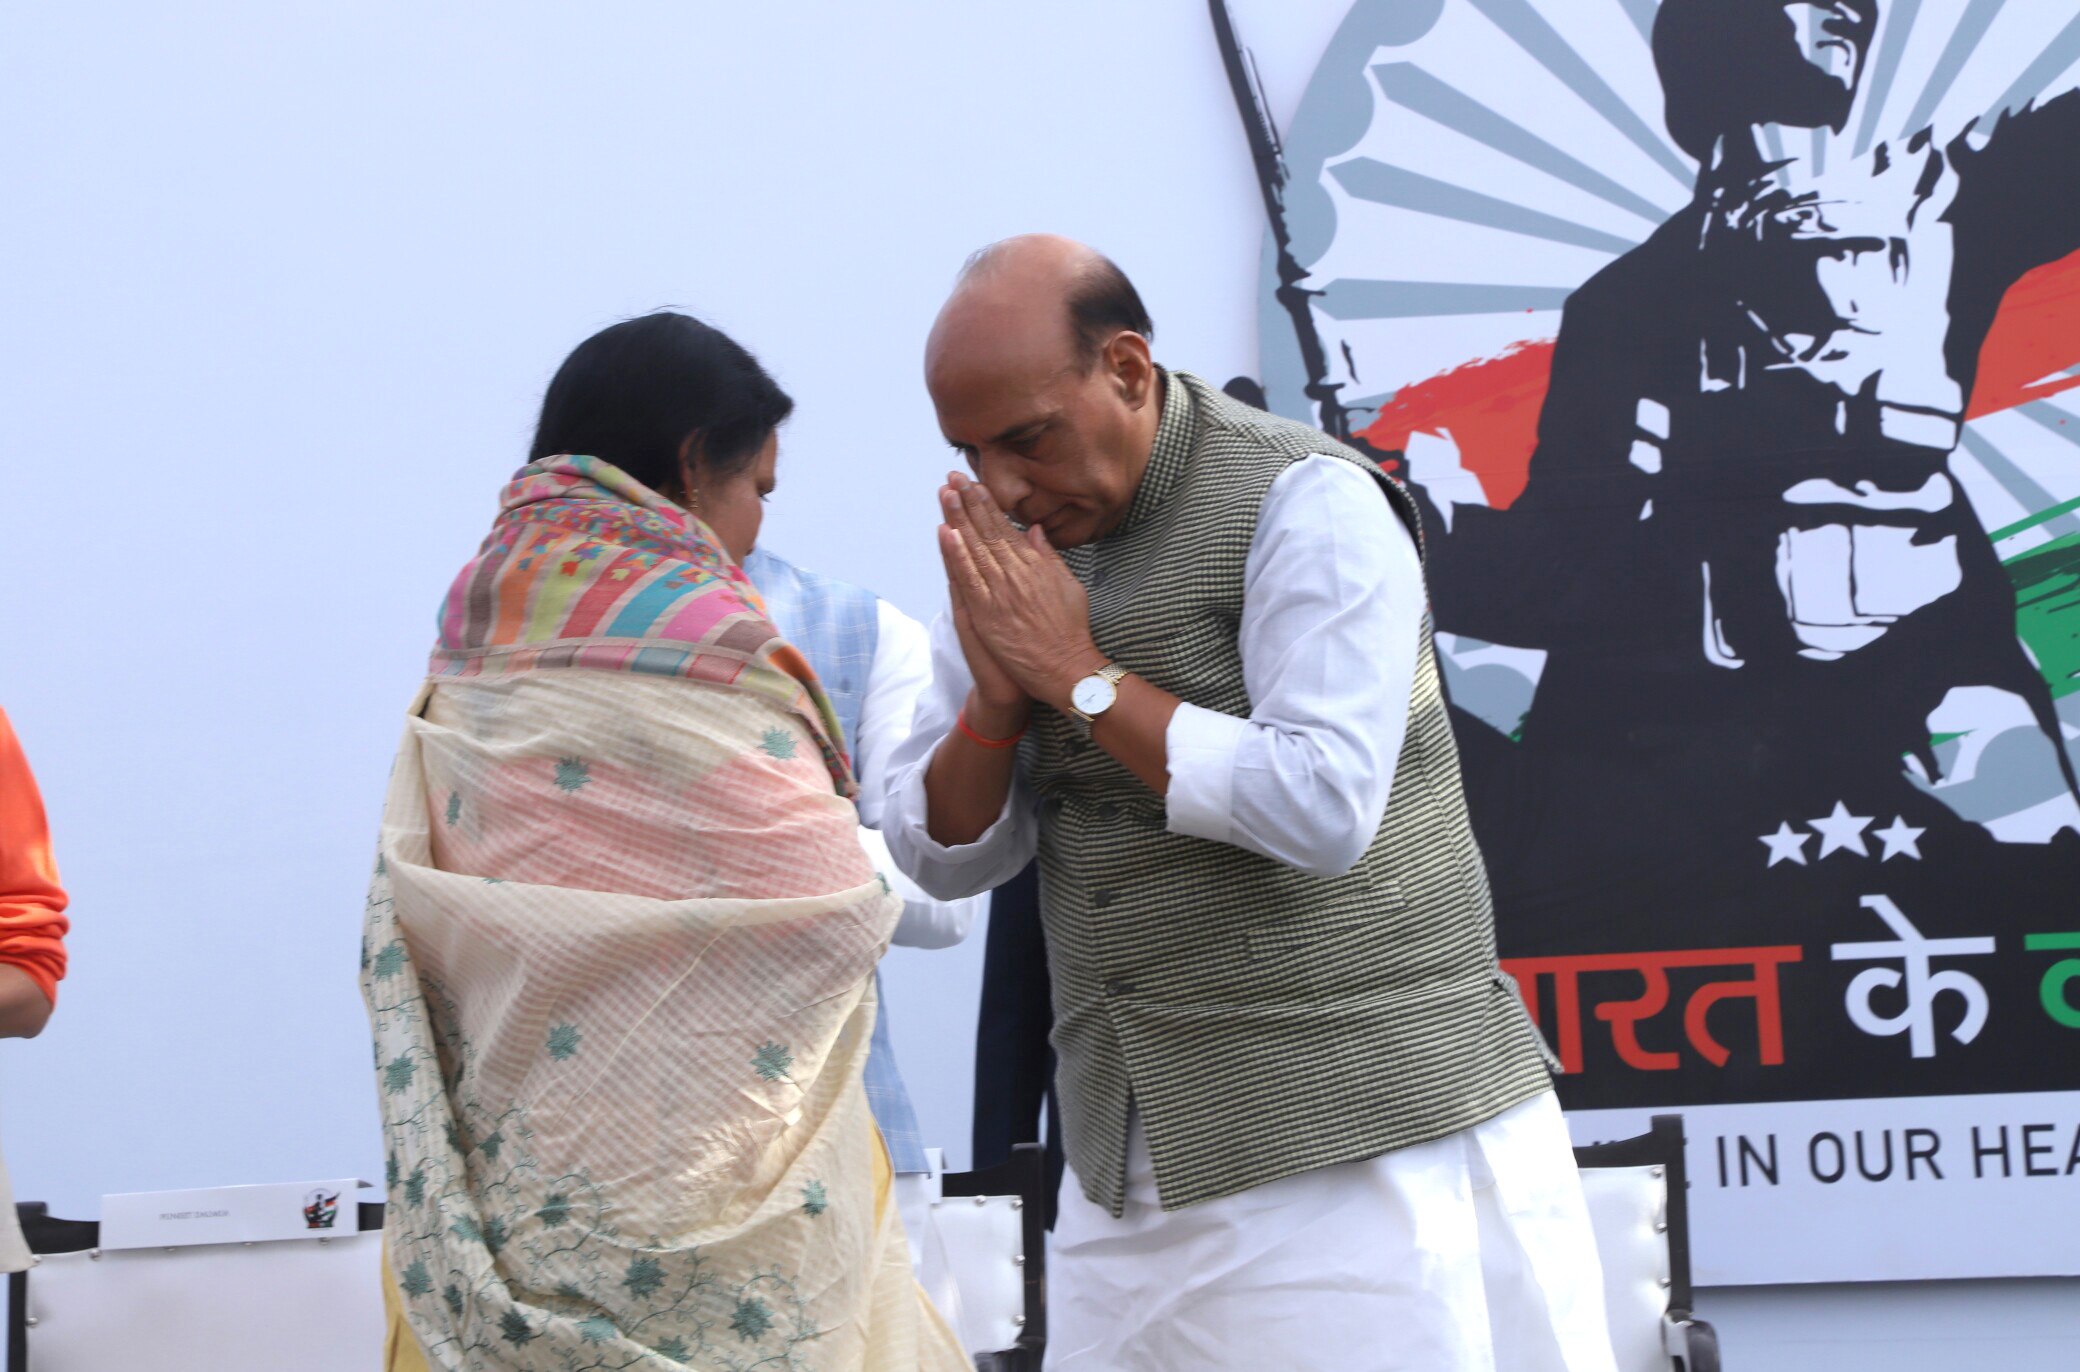 """The Union Home Minister, Shri Rajnath Singh greeting a family member of a martyr, at a function to raise funds for the """"Bharat ke Veer"""" fund, in New Delhi on January 20, 2018."""